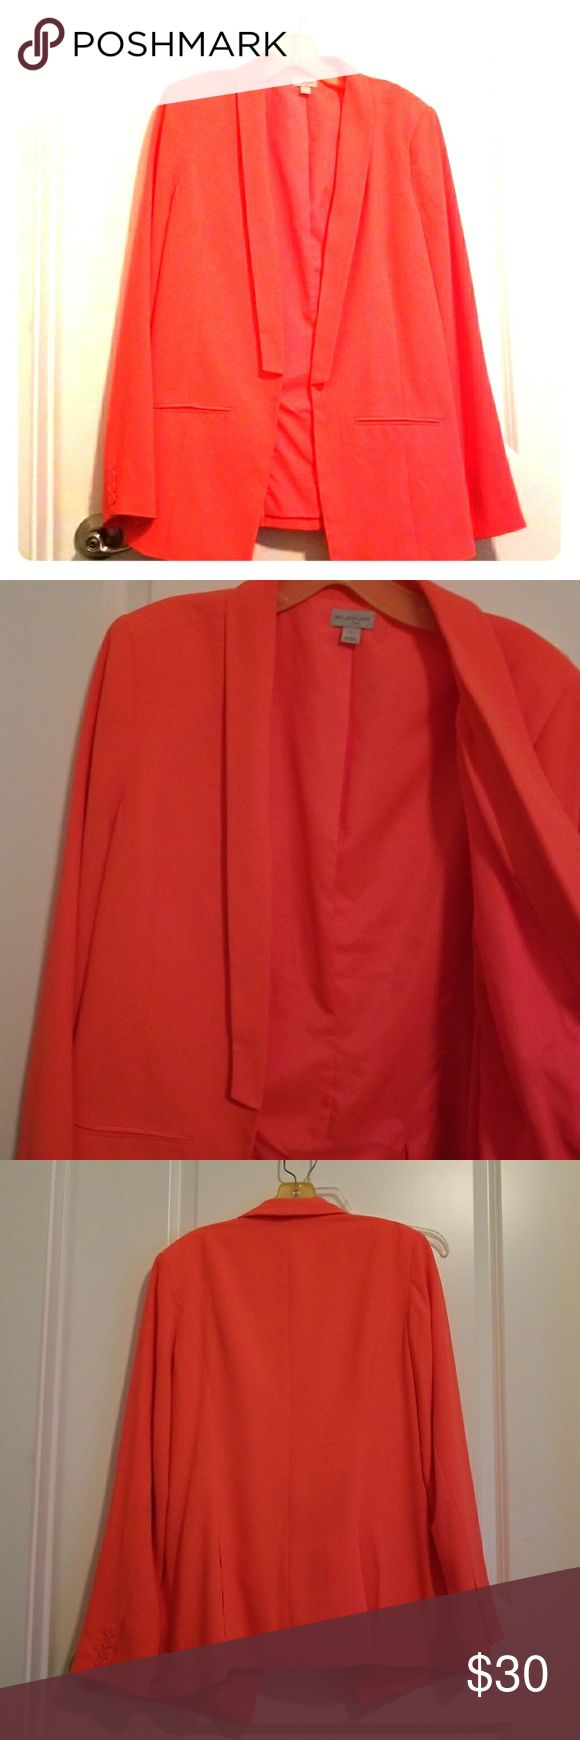 jacket Bright fluorescent Jacket  Orange/pink  wear this with skinny jeans...or skirt ...This coat is a definite head turner...have had a lot of great compliments make an offer or bundle 😉😊 belle sky Jackets & Coats Blazers